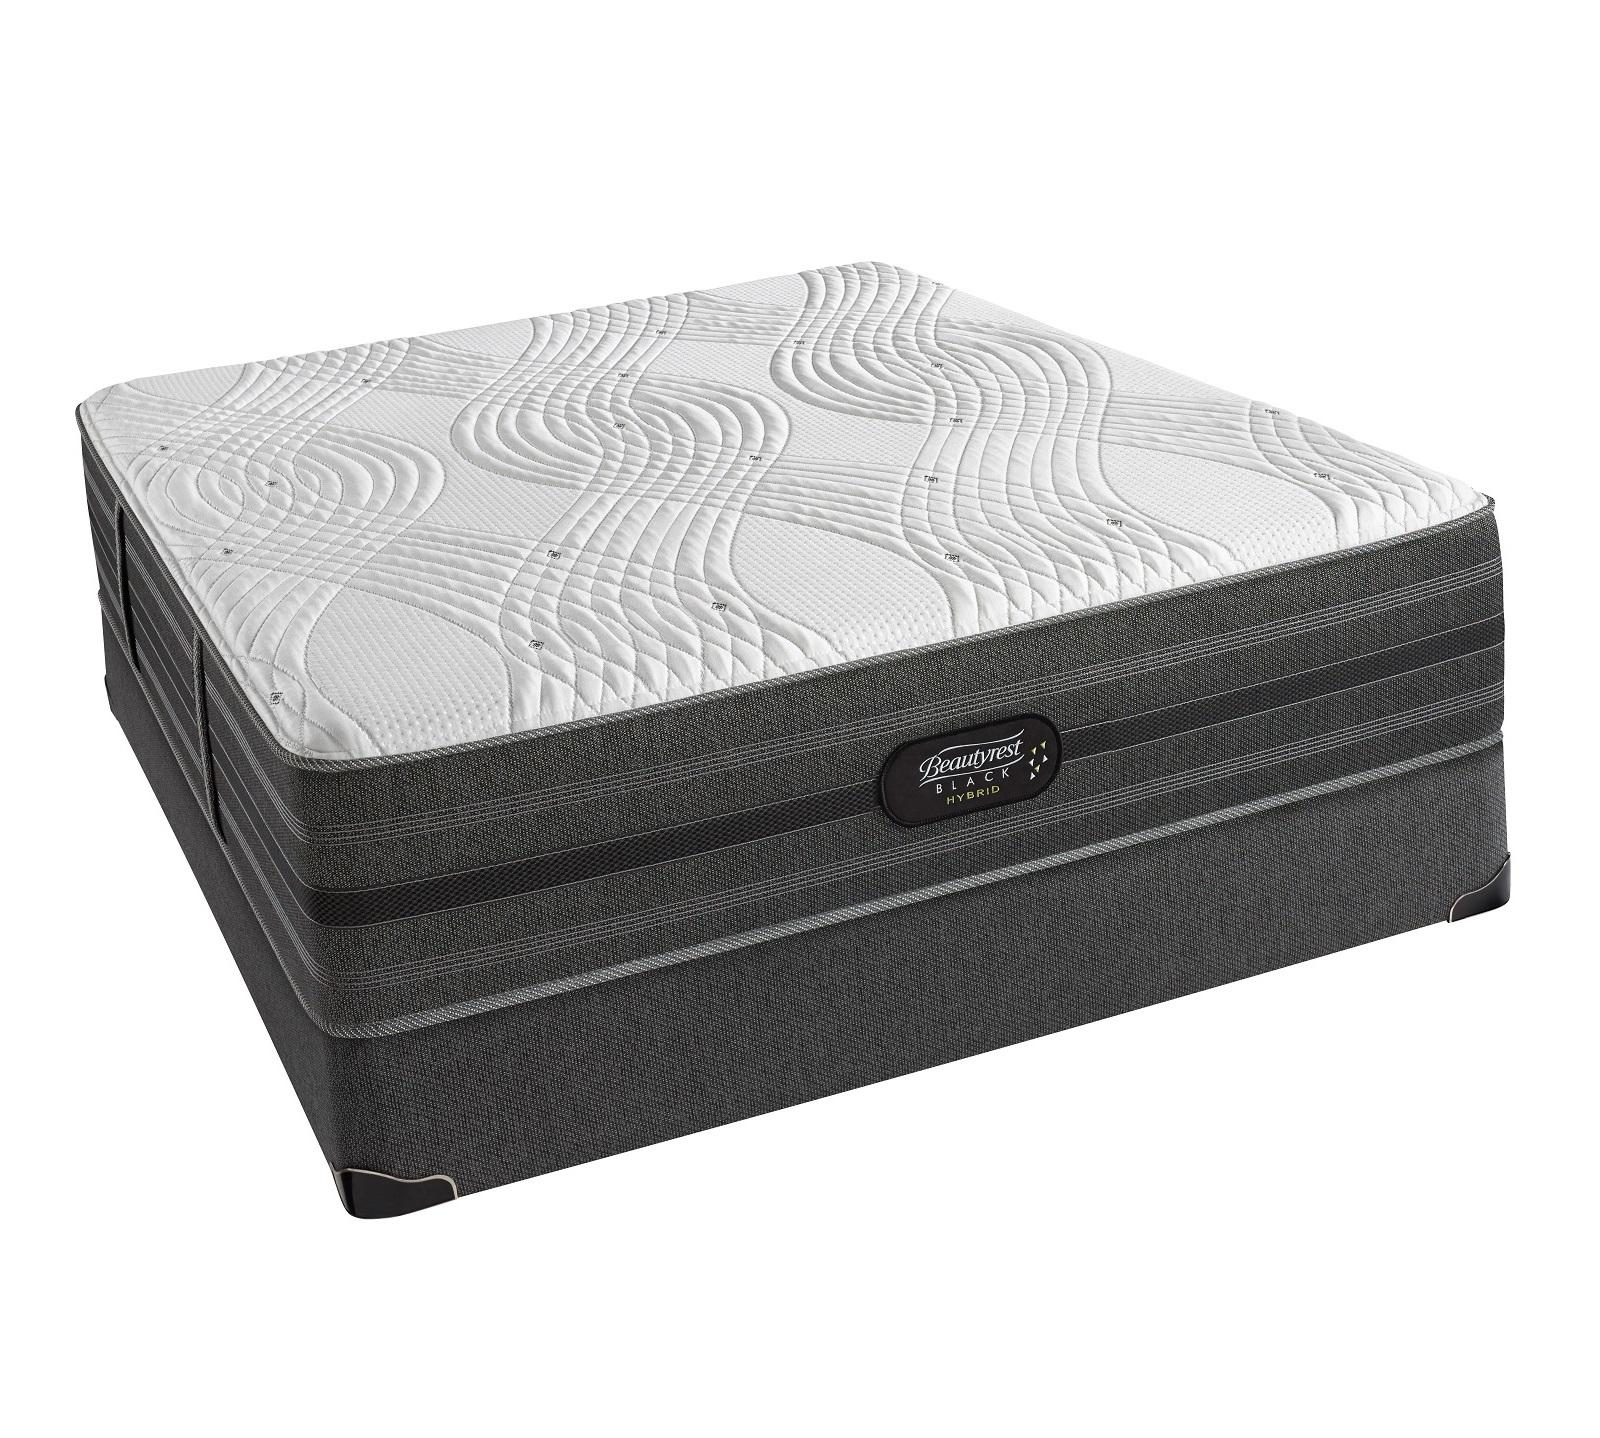 black hybrid gladney 14 luxury firm mattress rh mattressfirm com Simmons Mattress Model Names Serta Mattress